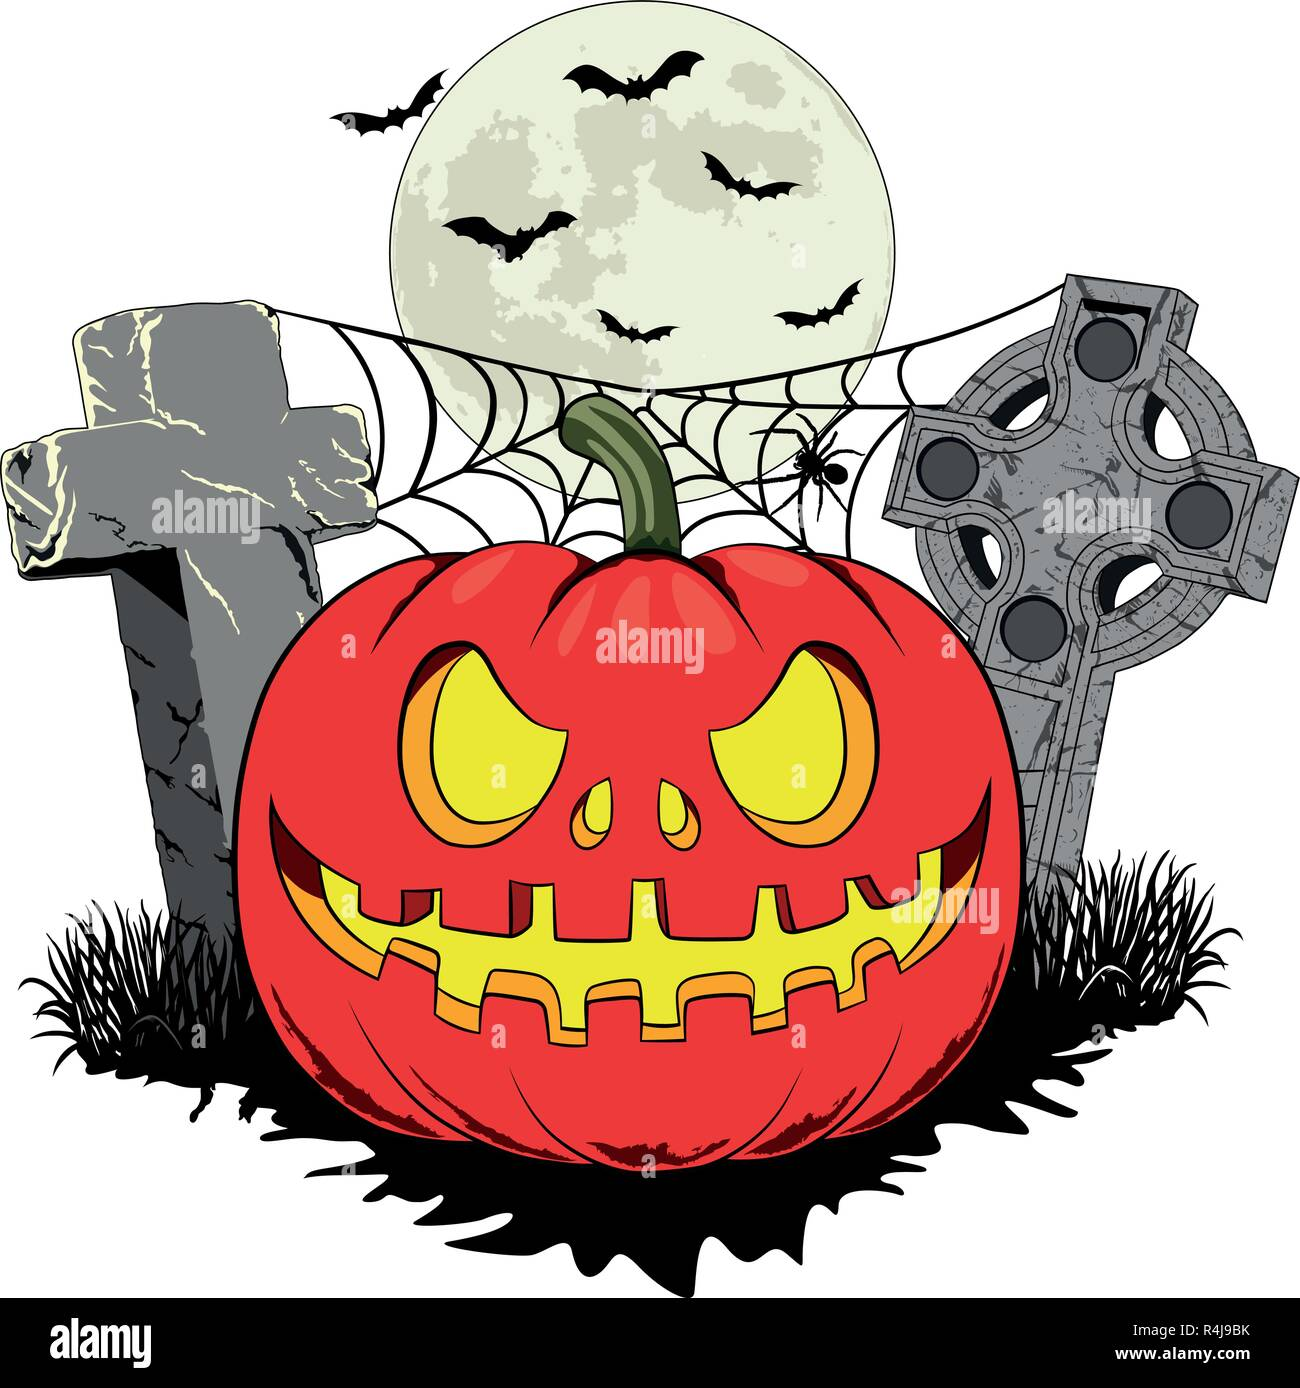 halloween pumpkin in a cemetery with two graves, a spider on the spider web and bats halloween pumpkin in a cemetery with two graves. - Stock Vector